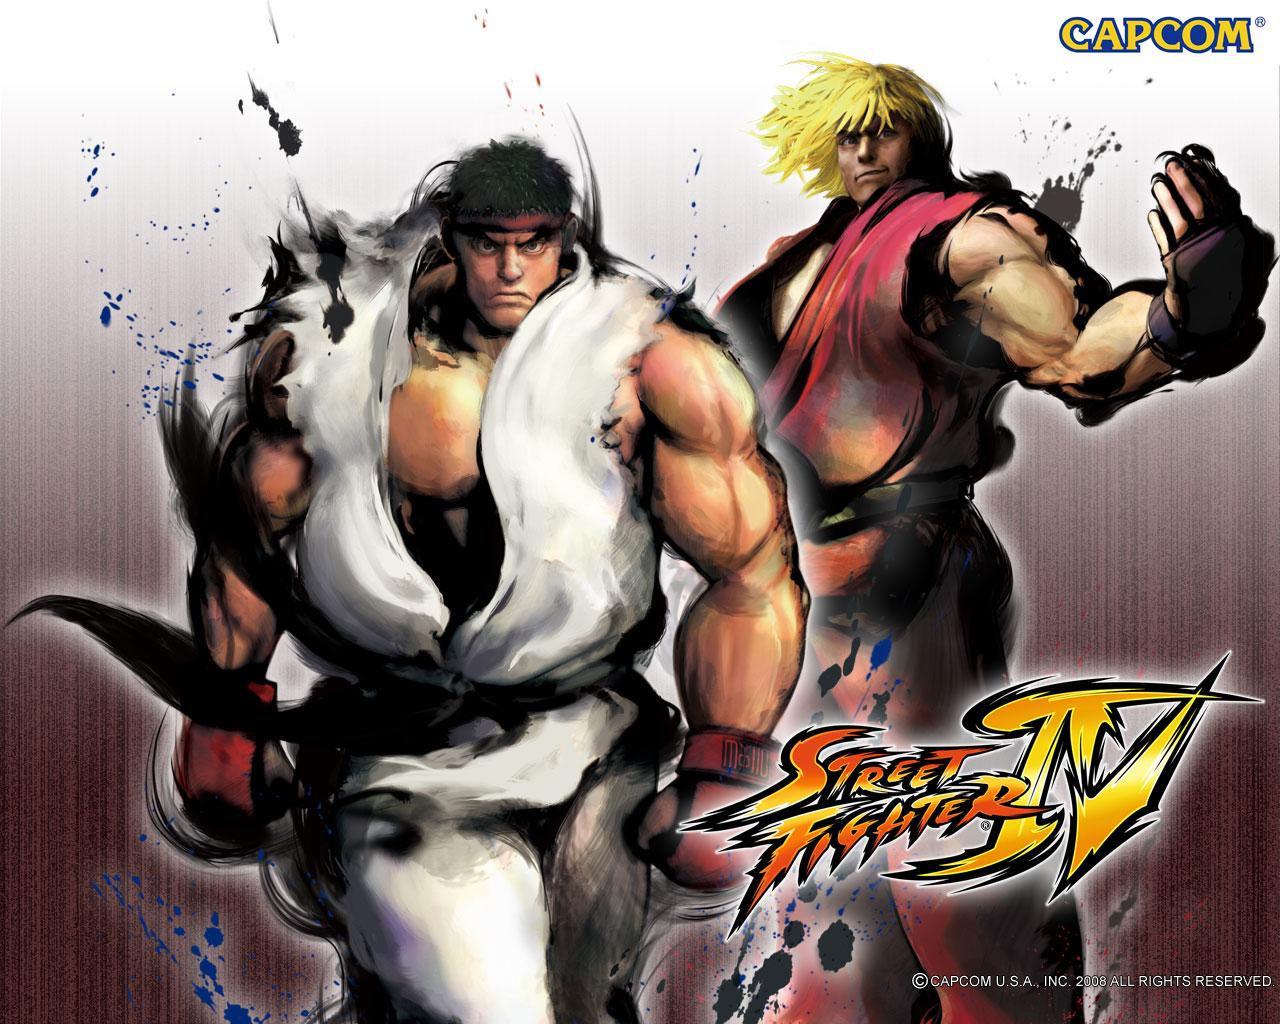 Обои Street Fighter IV Два война